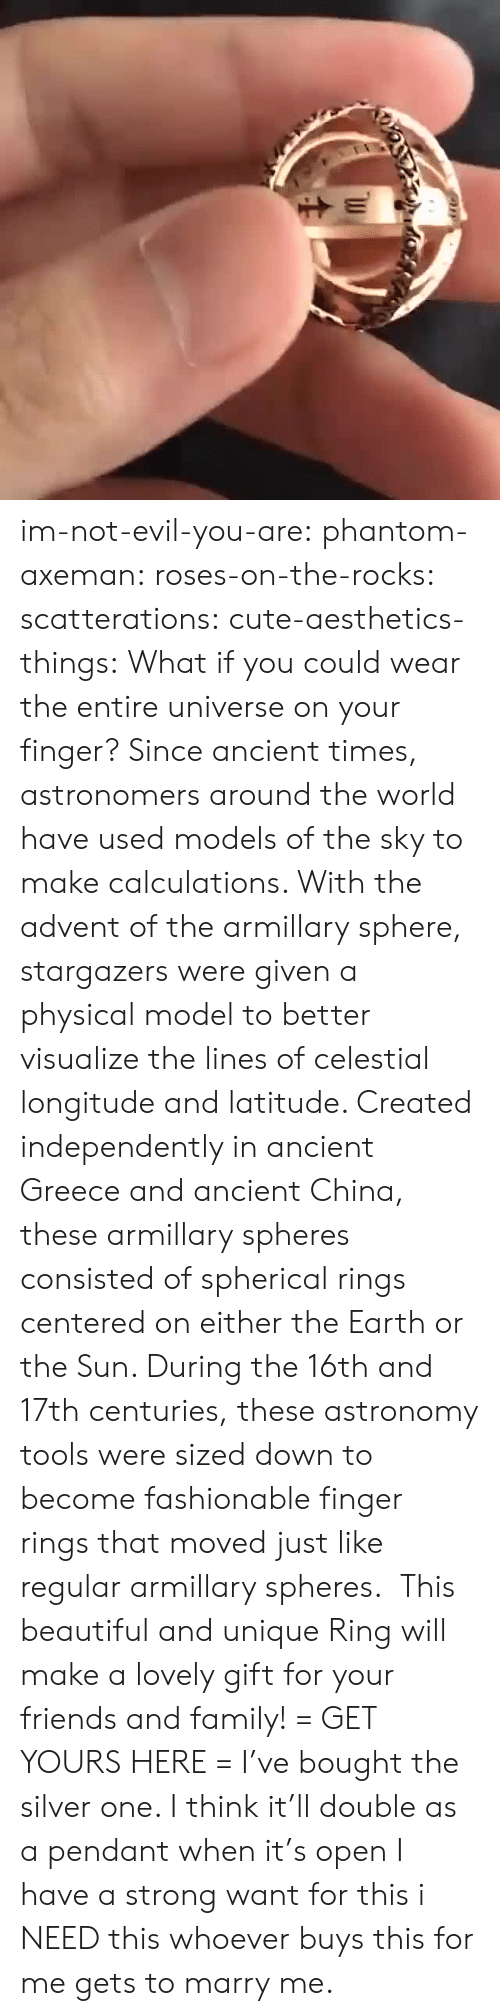 ancient greece: im-not-evil-you-are:  phantom-axeman: roses-on-the-rocks:  scatterations:   cute-aesthetics-things:  What if you could wear the entire universe on your finger? Since ancient times, astronomers around the world have used models of the sky to make calculations. With the advent of the armillary sphere, stargazers were given a physical model to better visualize the lines of celestial longitude and latitude. Created independently in ancient Greece and ancient China, these armillary spheres consisted of spherical rings centered on either the Earth or the Sun. During the 16th and 17th centuries, these astronomy tools were sized down to become fashionable finger rings that moved just like regular armillary spheres. This beautiful and unique Ring will make a lovely gift for your friends and family! = GET YOURS HERE =   I've bought the silver one. I think it'll double as a pendant when it's open    I have a strong want for this   i NEED this  whoever buys this for me gets to marry me.